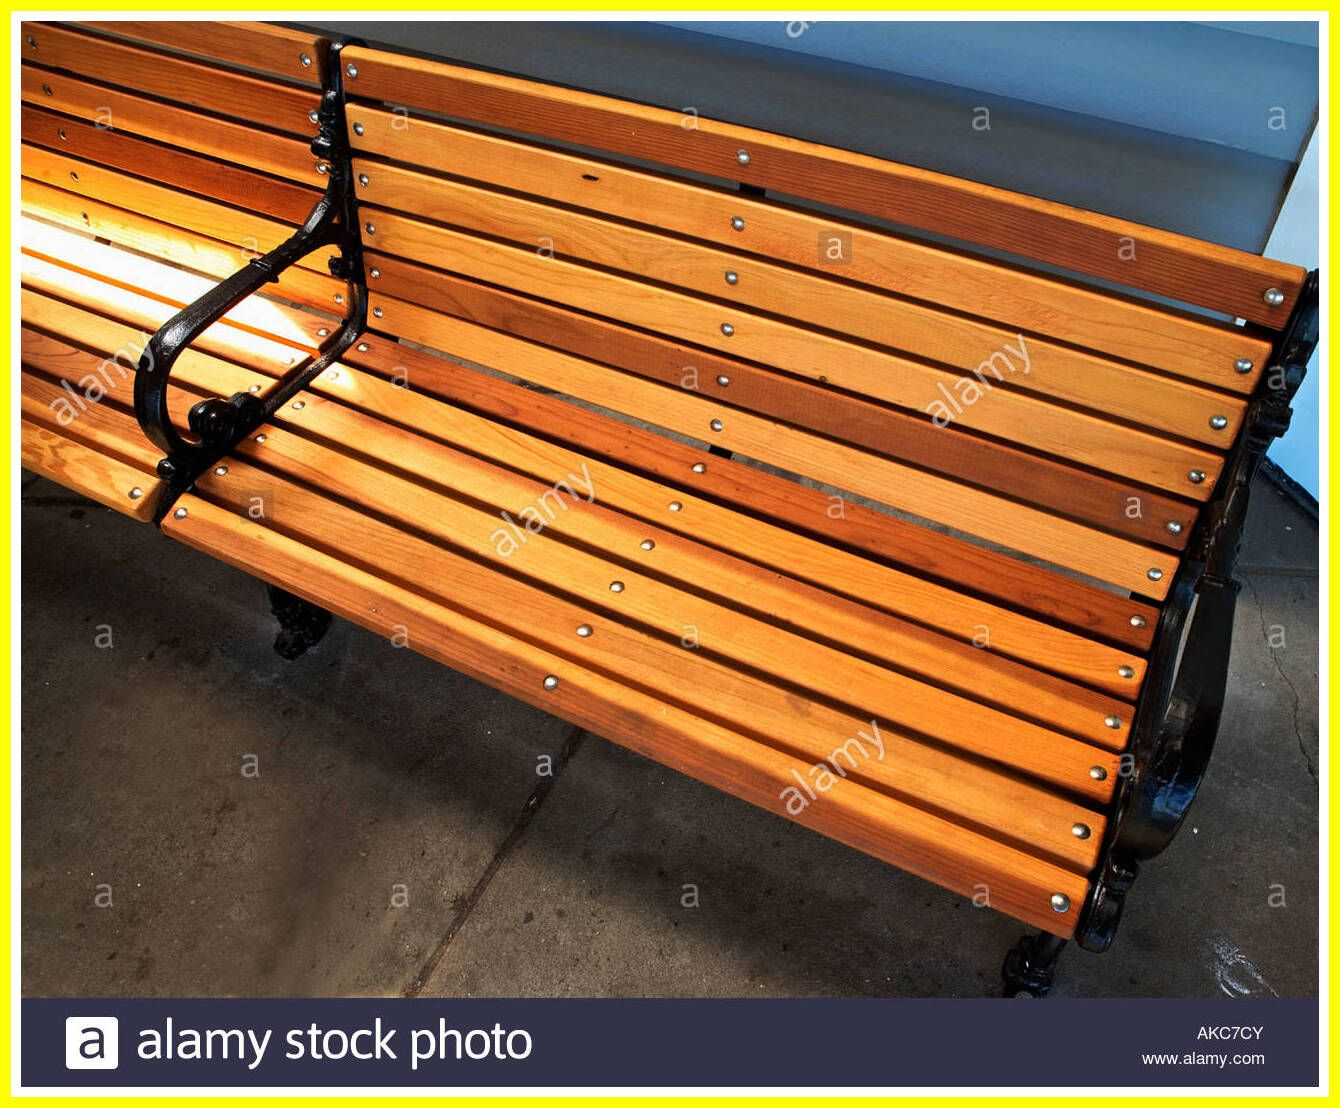 80 Reference Of Park Bench Wood Slats In 2020 Wooden Park Bench Wooden Bench Wood Slats